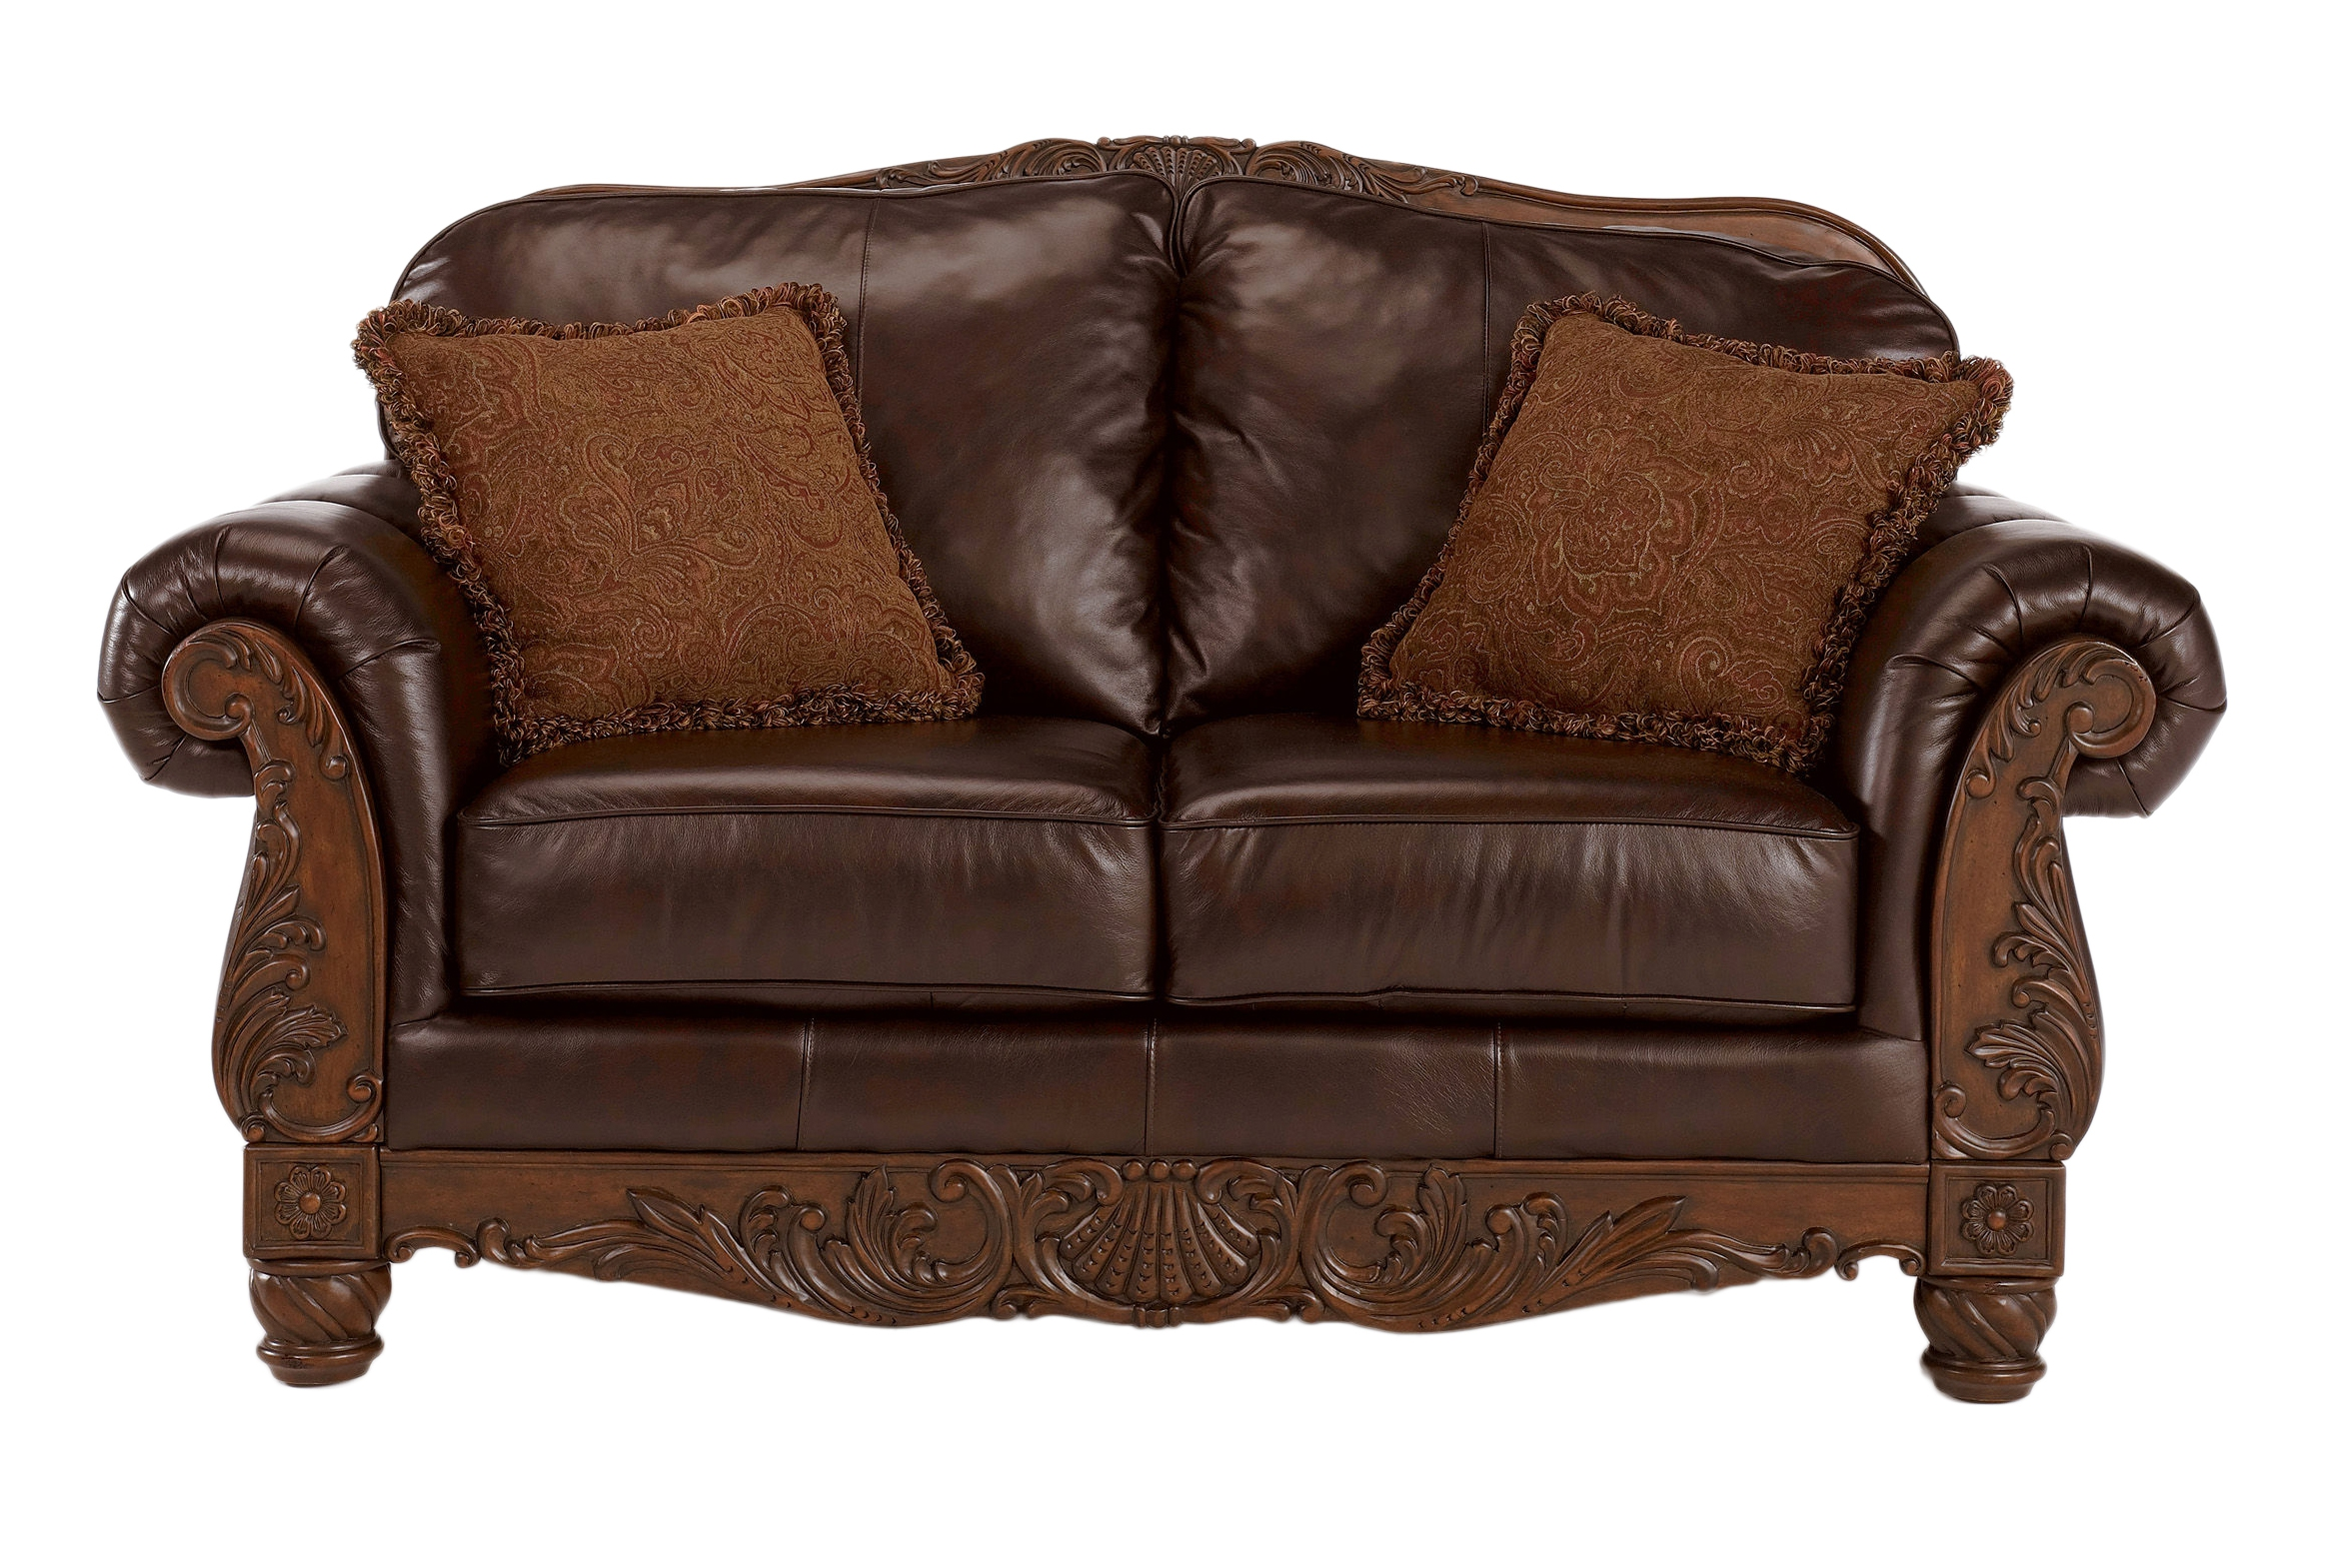 Ashley Furniture North Shore Loveseat The Classy Home